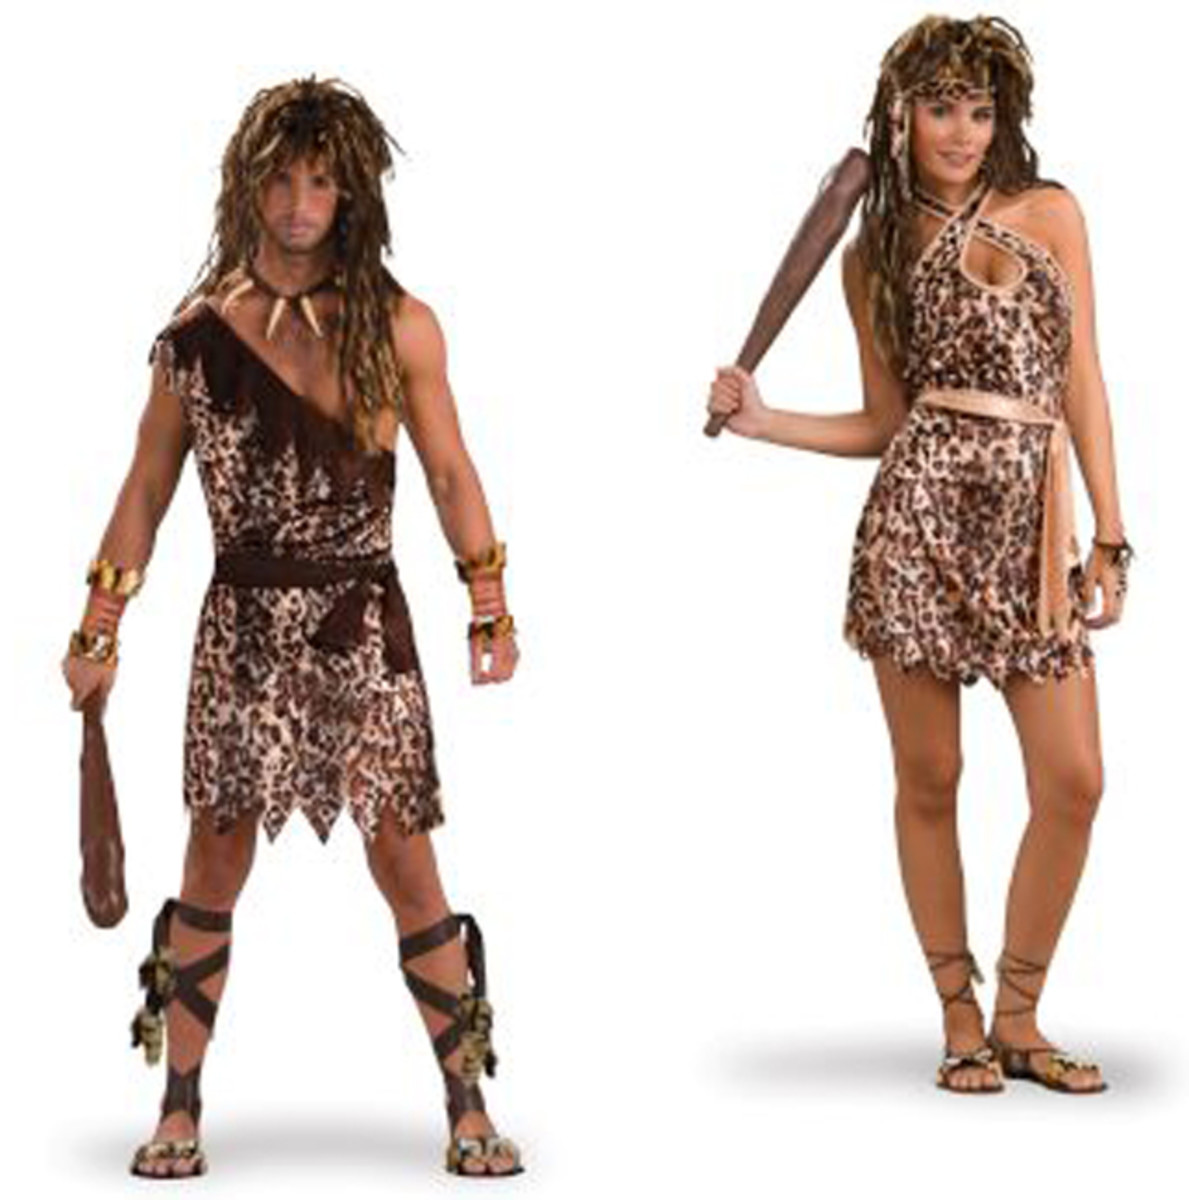 The Cave Man and Cave Woman Couples Costume